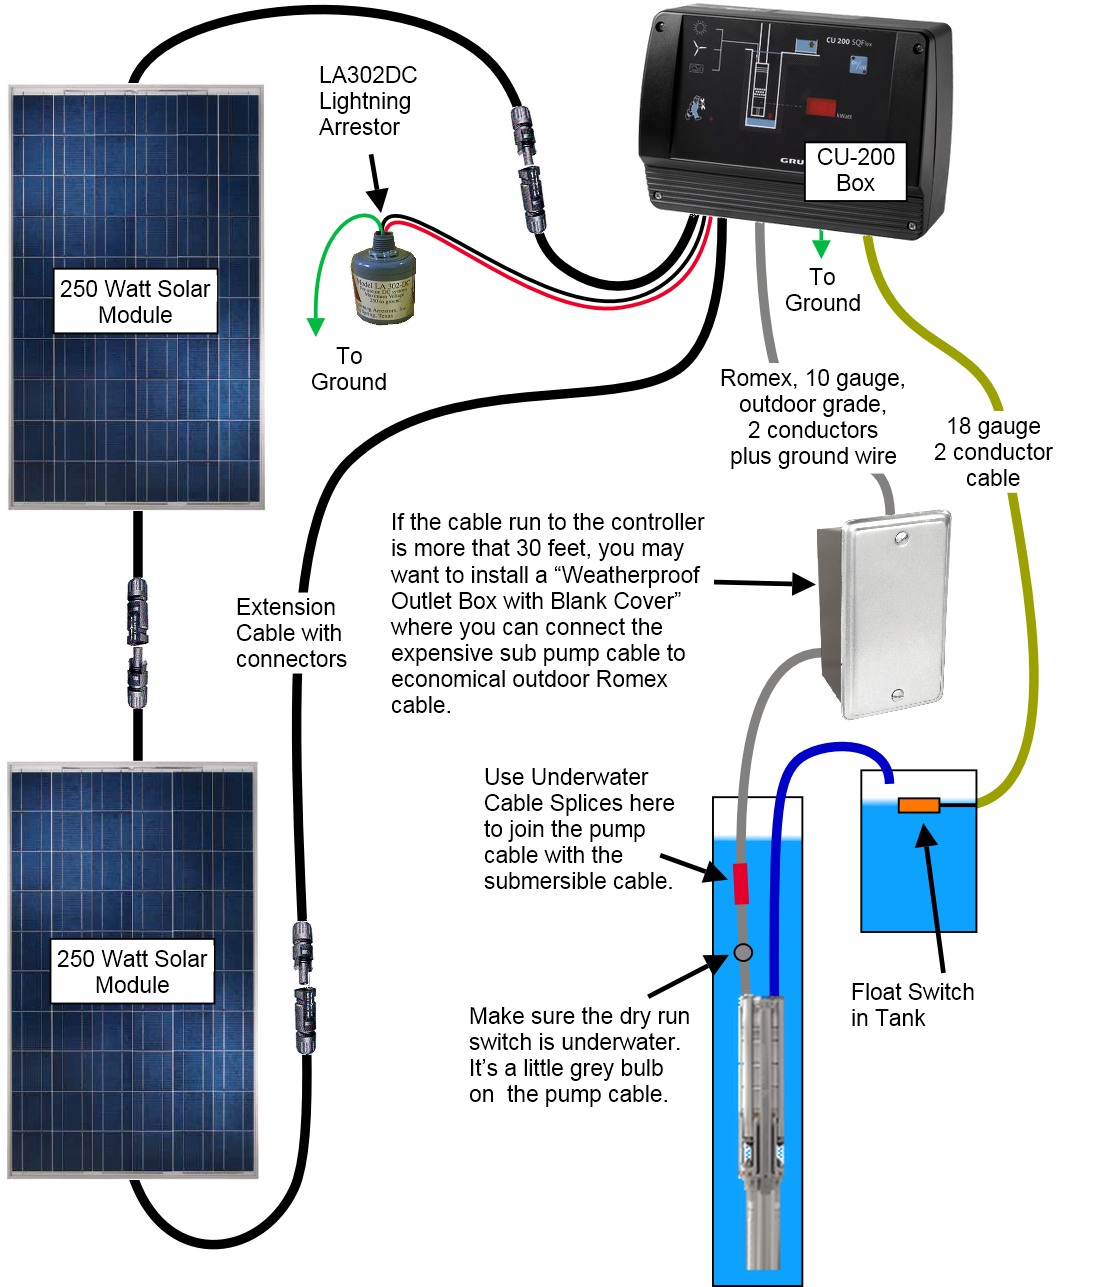 grundfos sqflex installation diagram?t=1422423383 grundfos sqflex solar water pump wiring diagram solar wiring diagram pdf at gsmportal.co